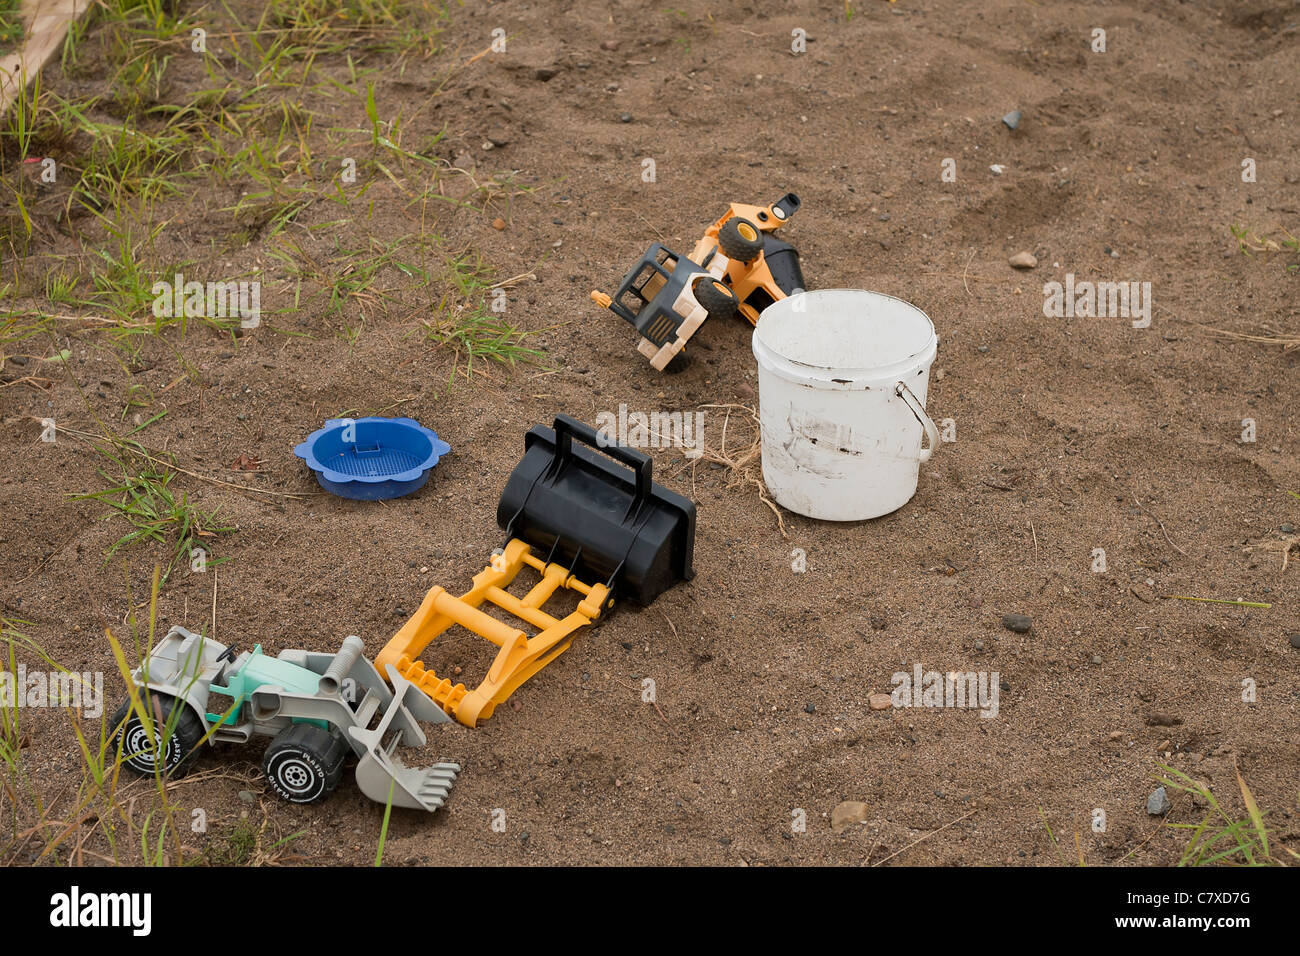 Toys lying around in a sandbox - Stock Image